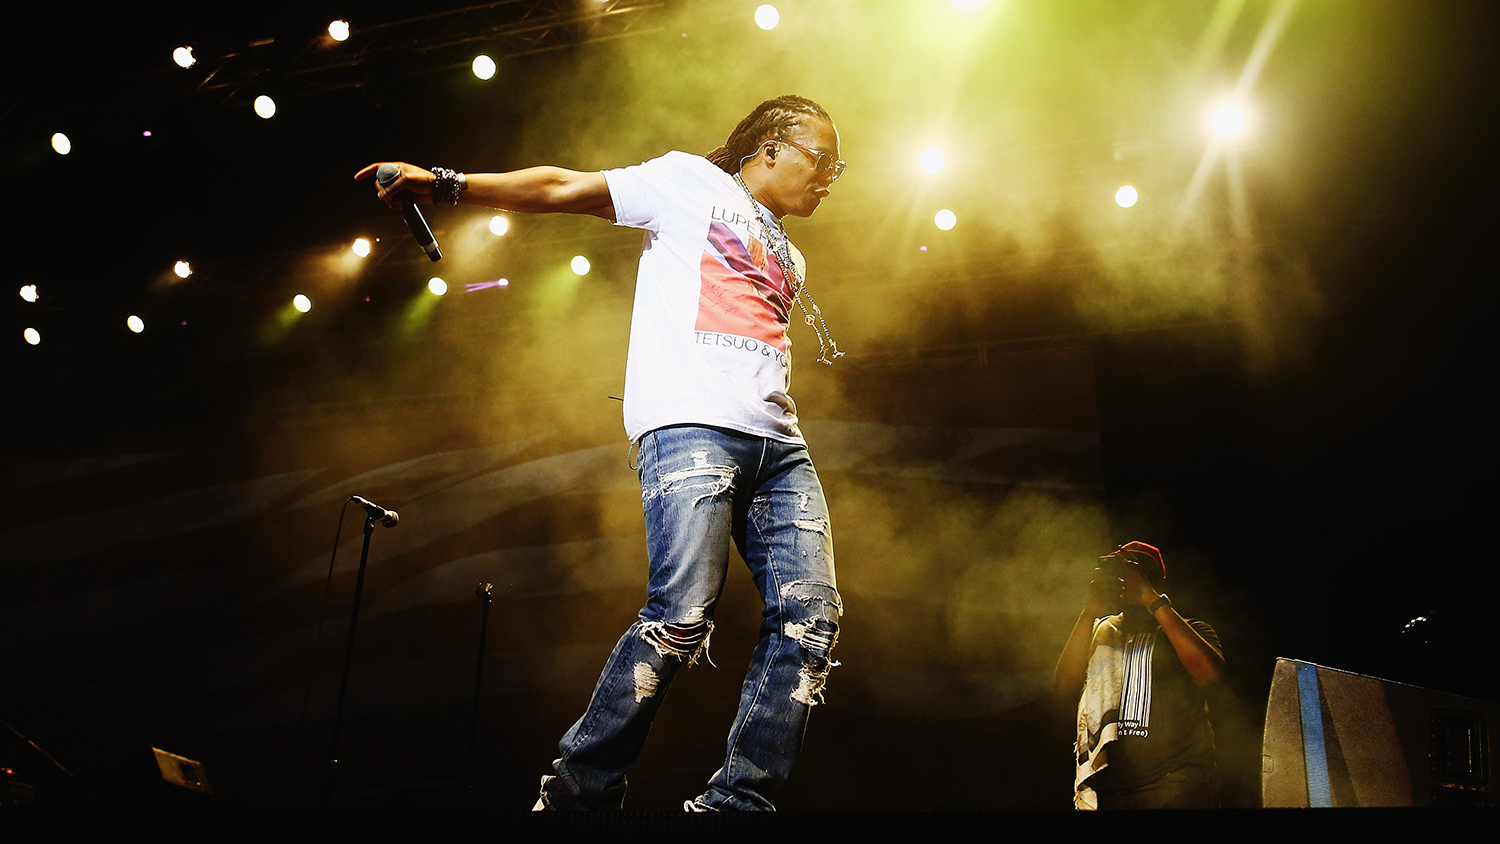 Messiah Music: Investigating the Hidden Meaning of Lupe Fiasco's